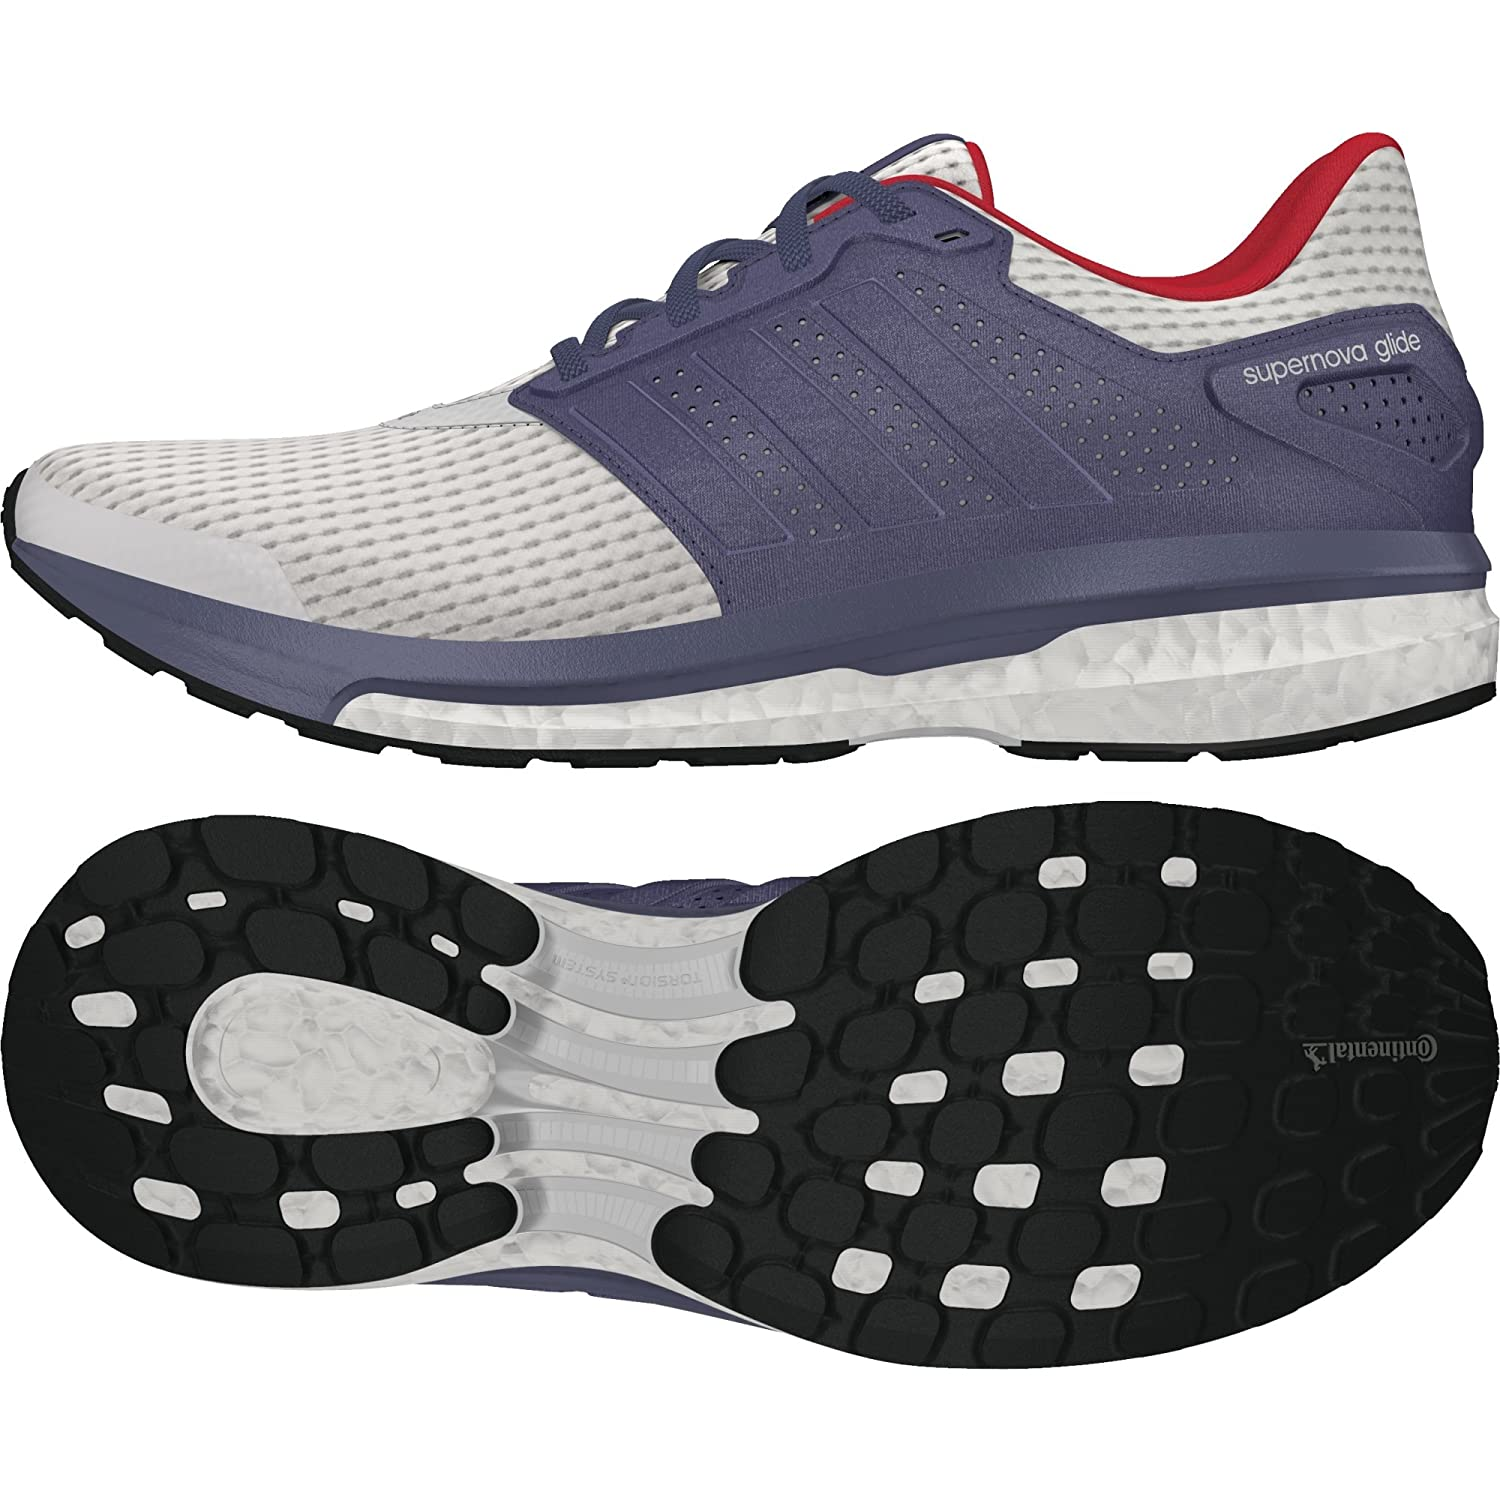 c6881130ad907 adidas Women s Supernova Glide 8 W Running Shoes  Amazon.co.uk  Shoes   Bags